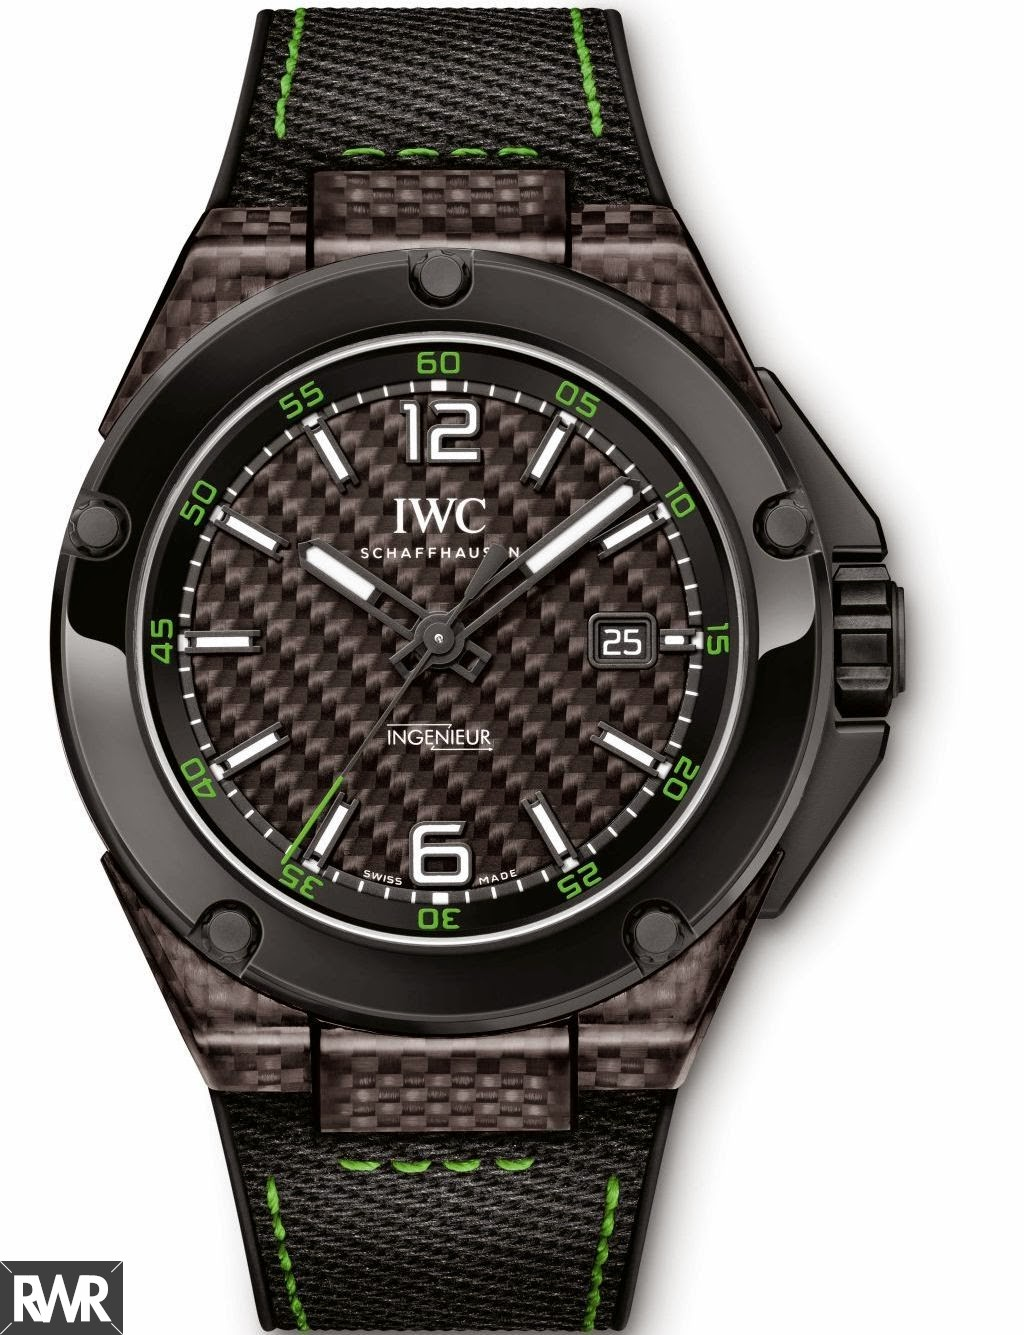 Replica IWC Ingenieur Automatic Carbon Performance Ceramic Mens Watch IW322404